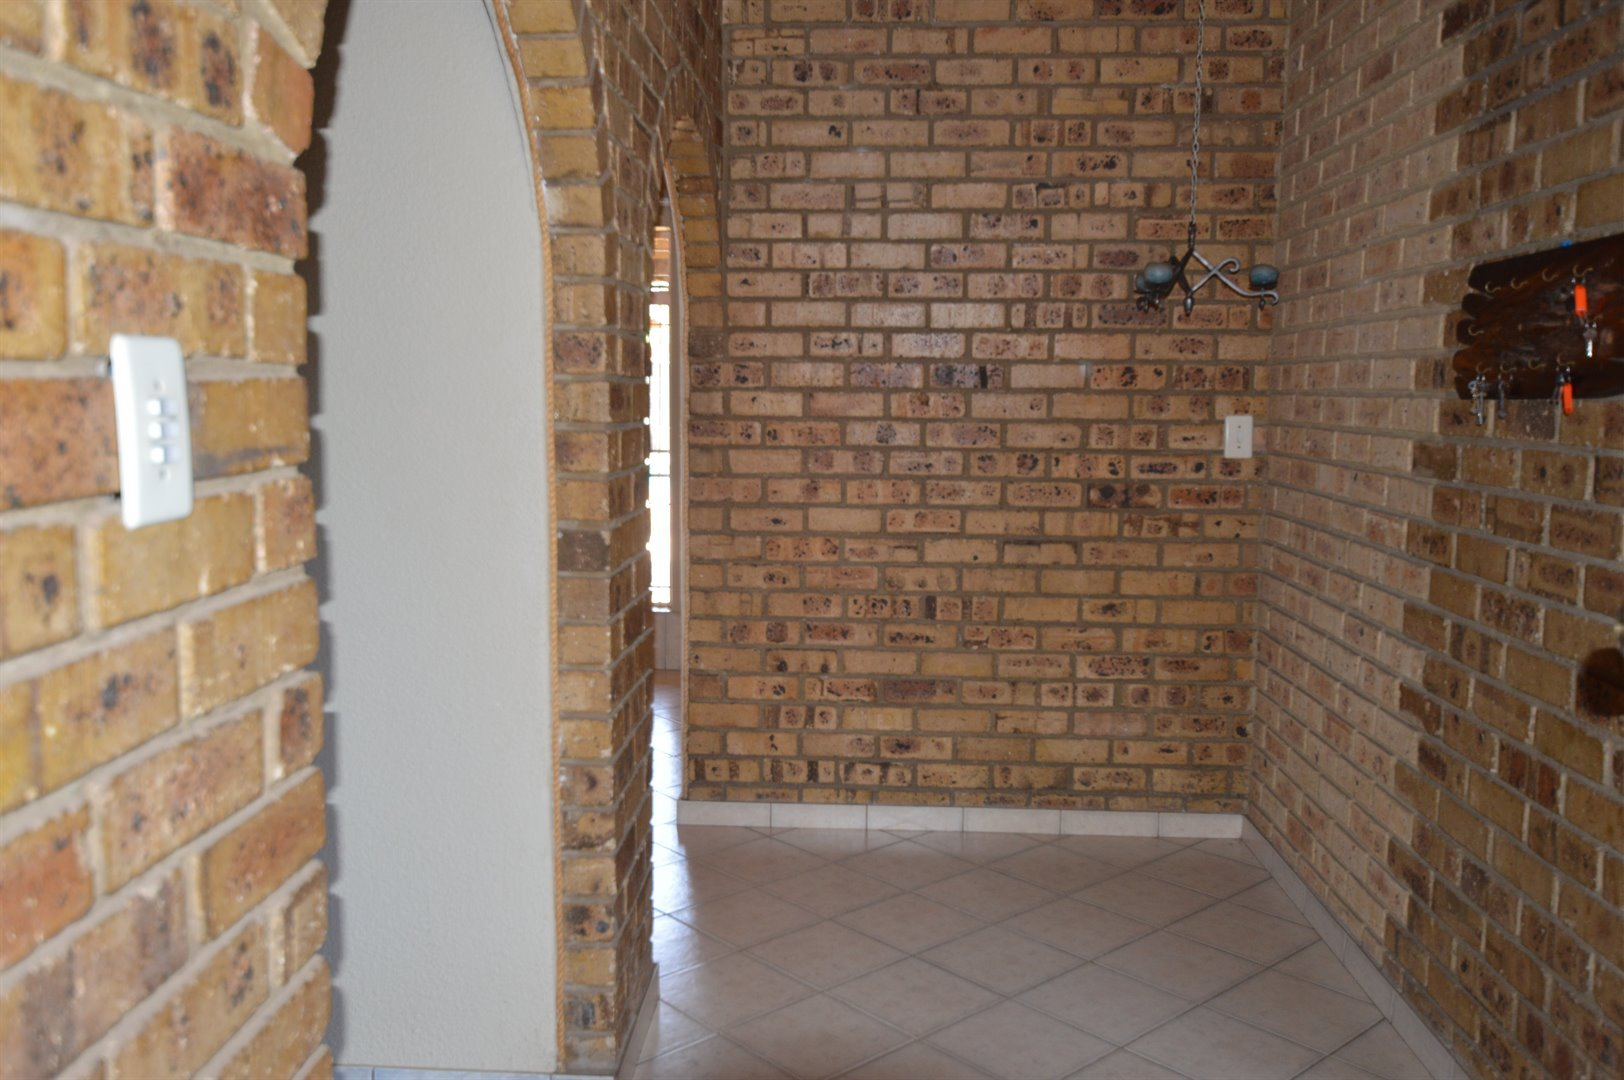 Vanderbijlpark Se 2 property for sale. Ref No: 13623209. Picture no 23